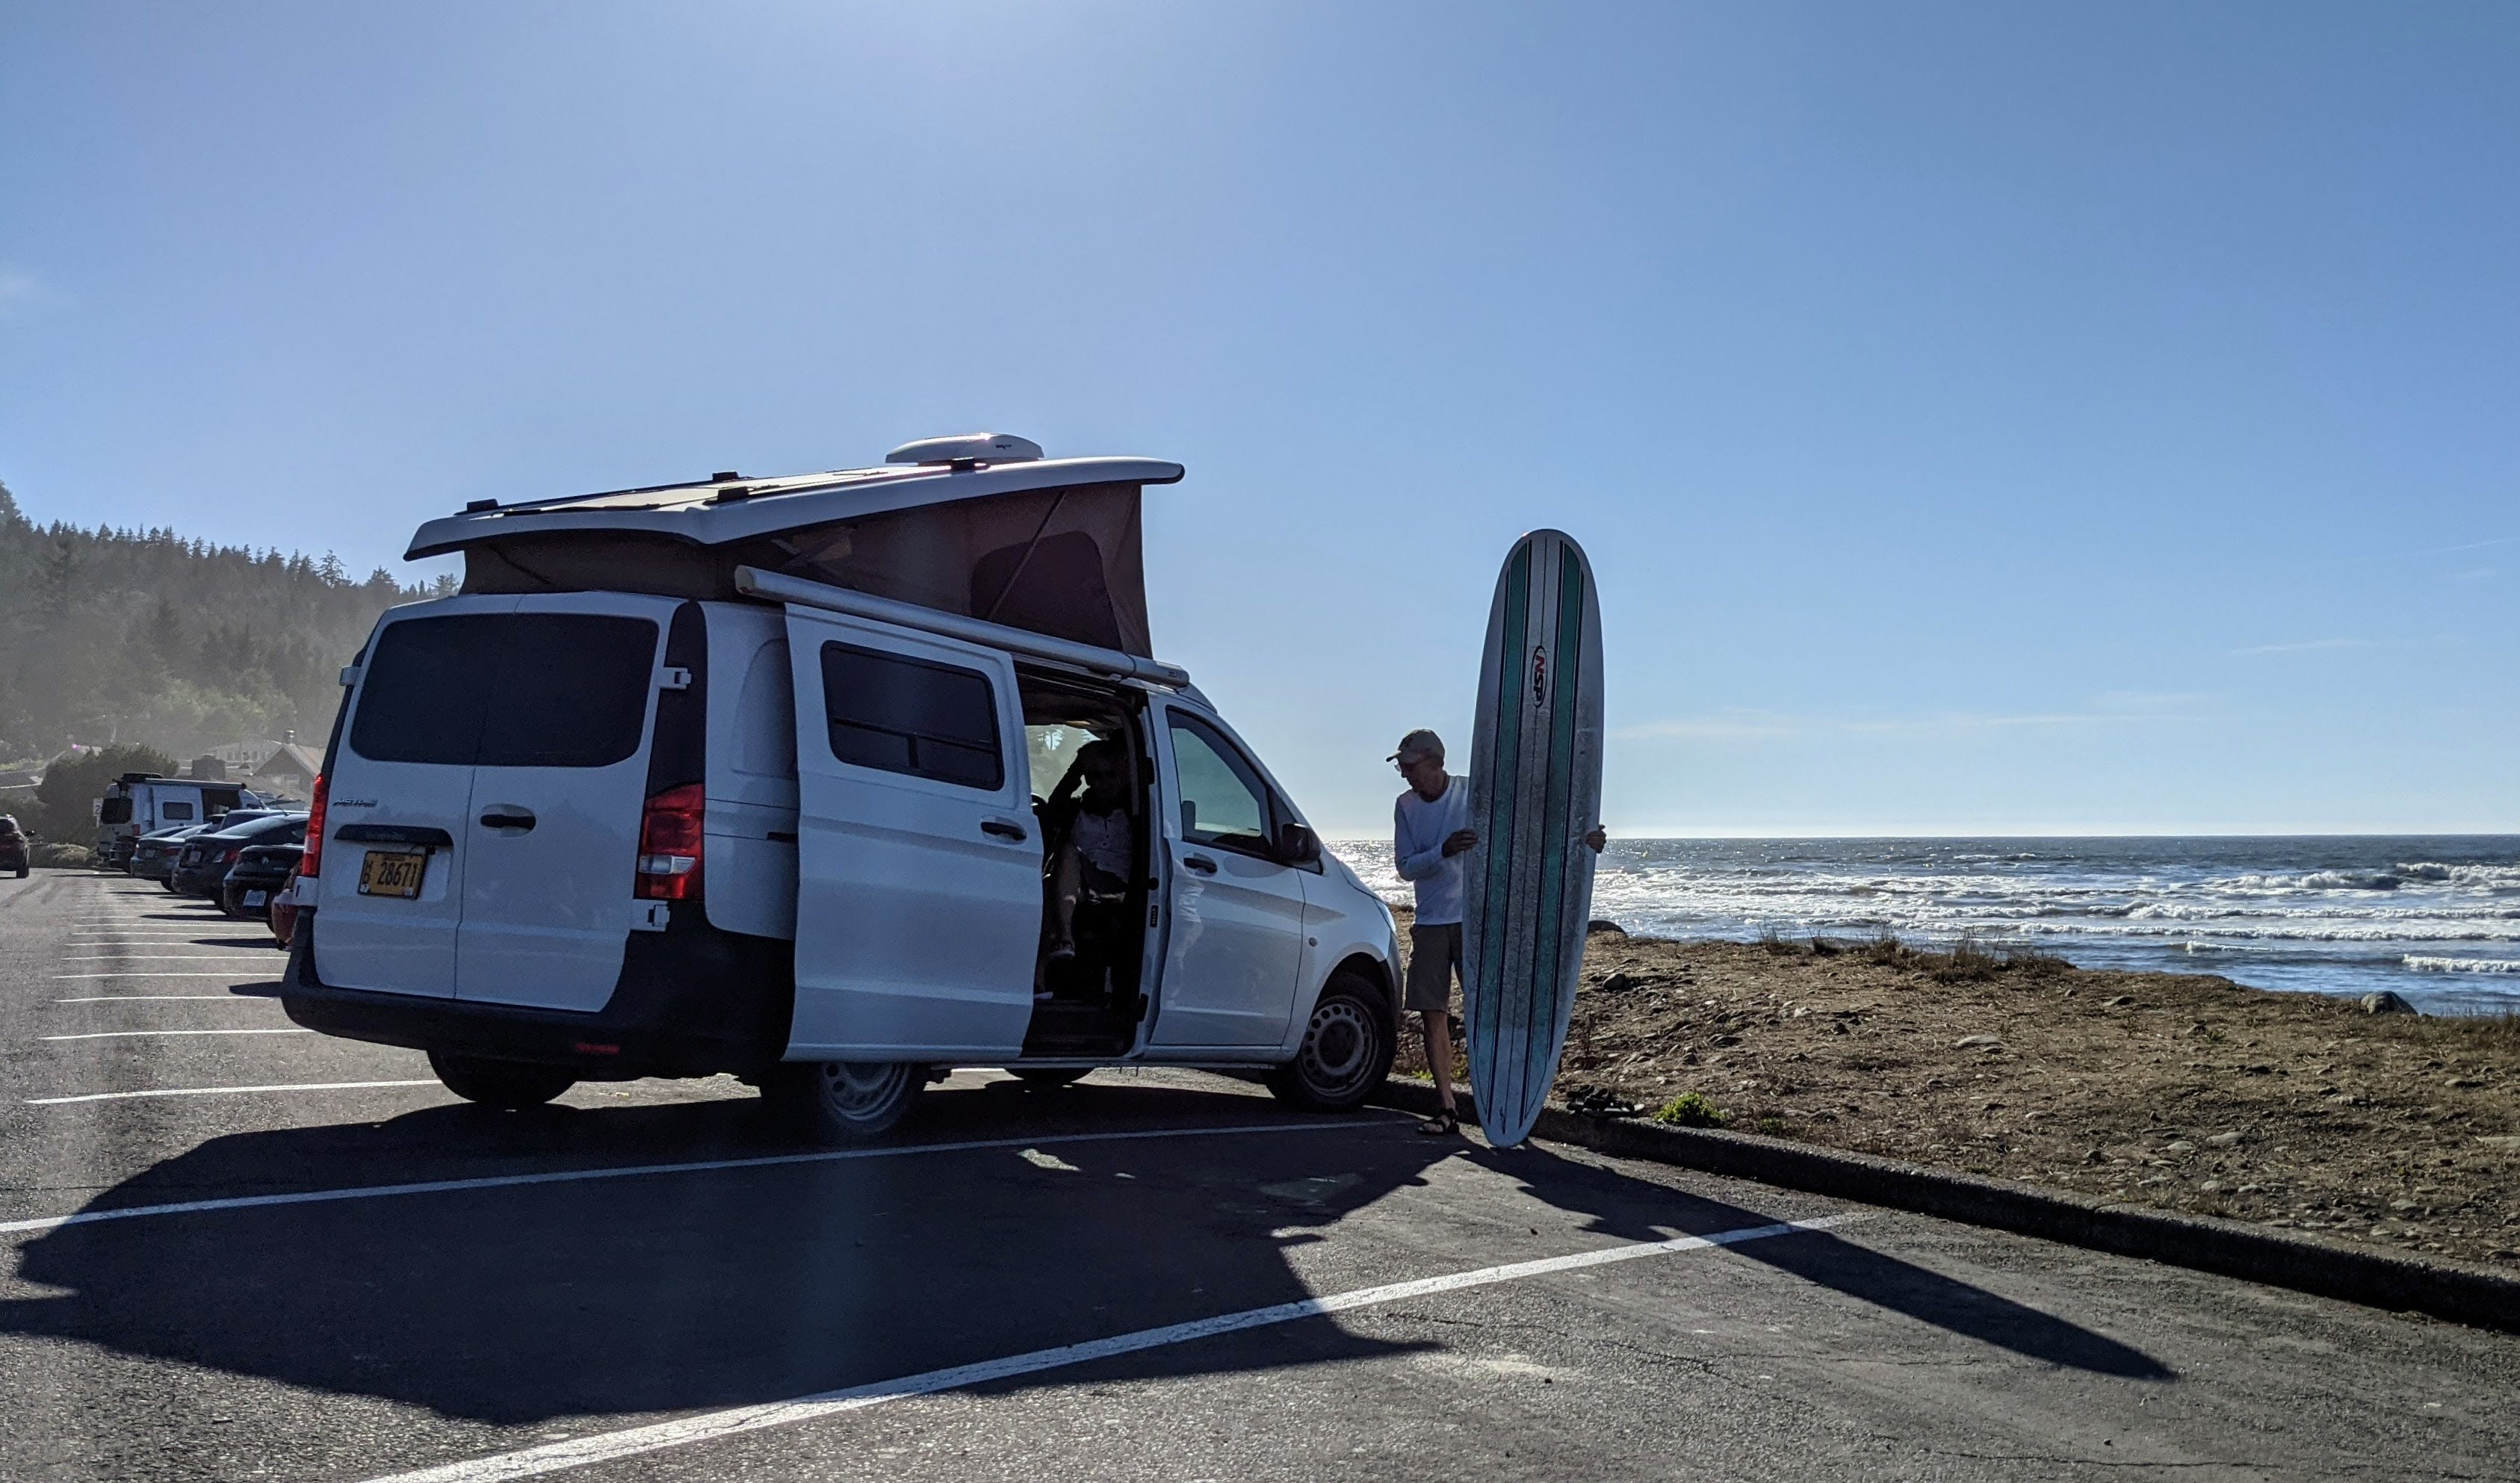 Van at beach with surfboard